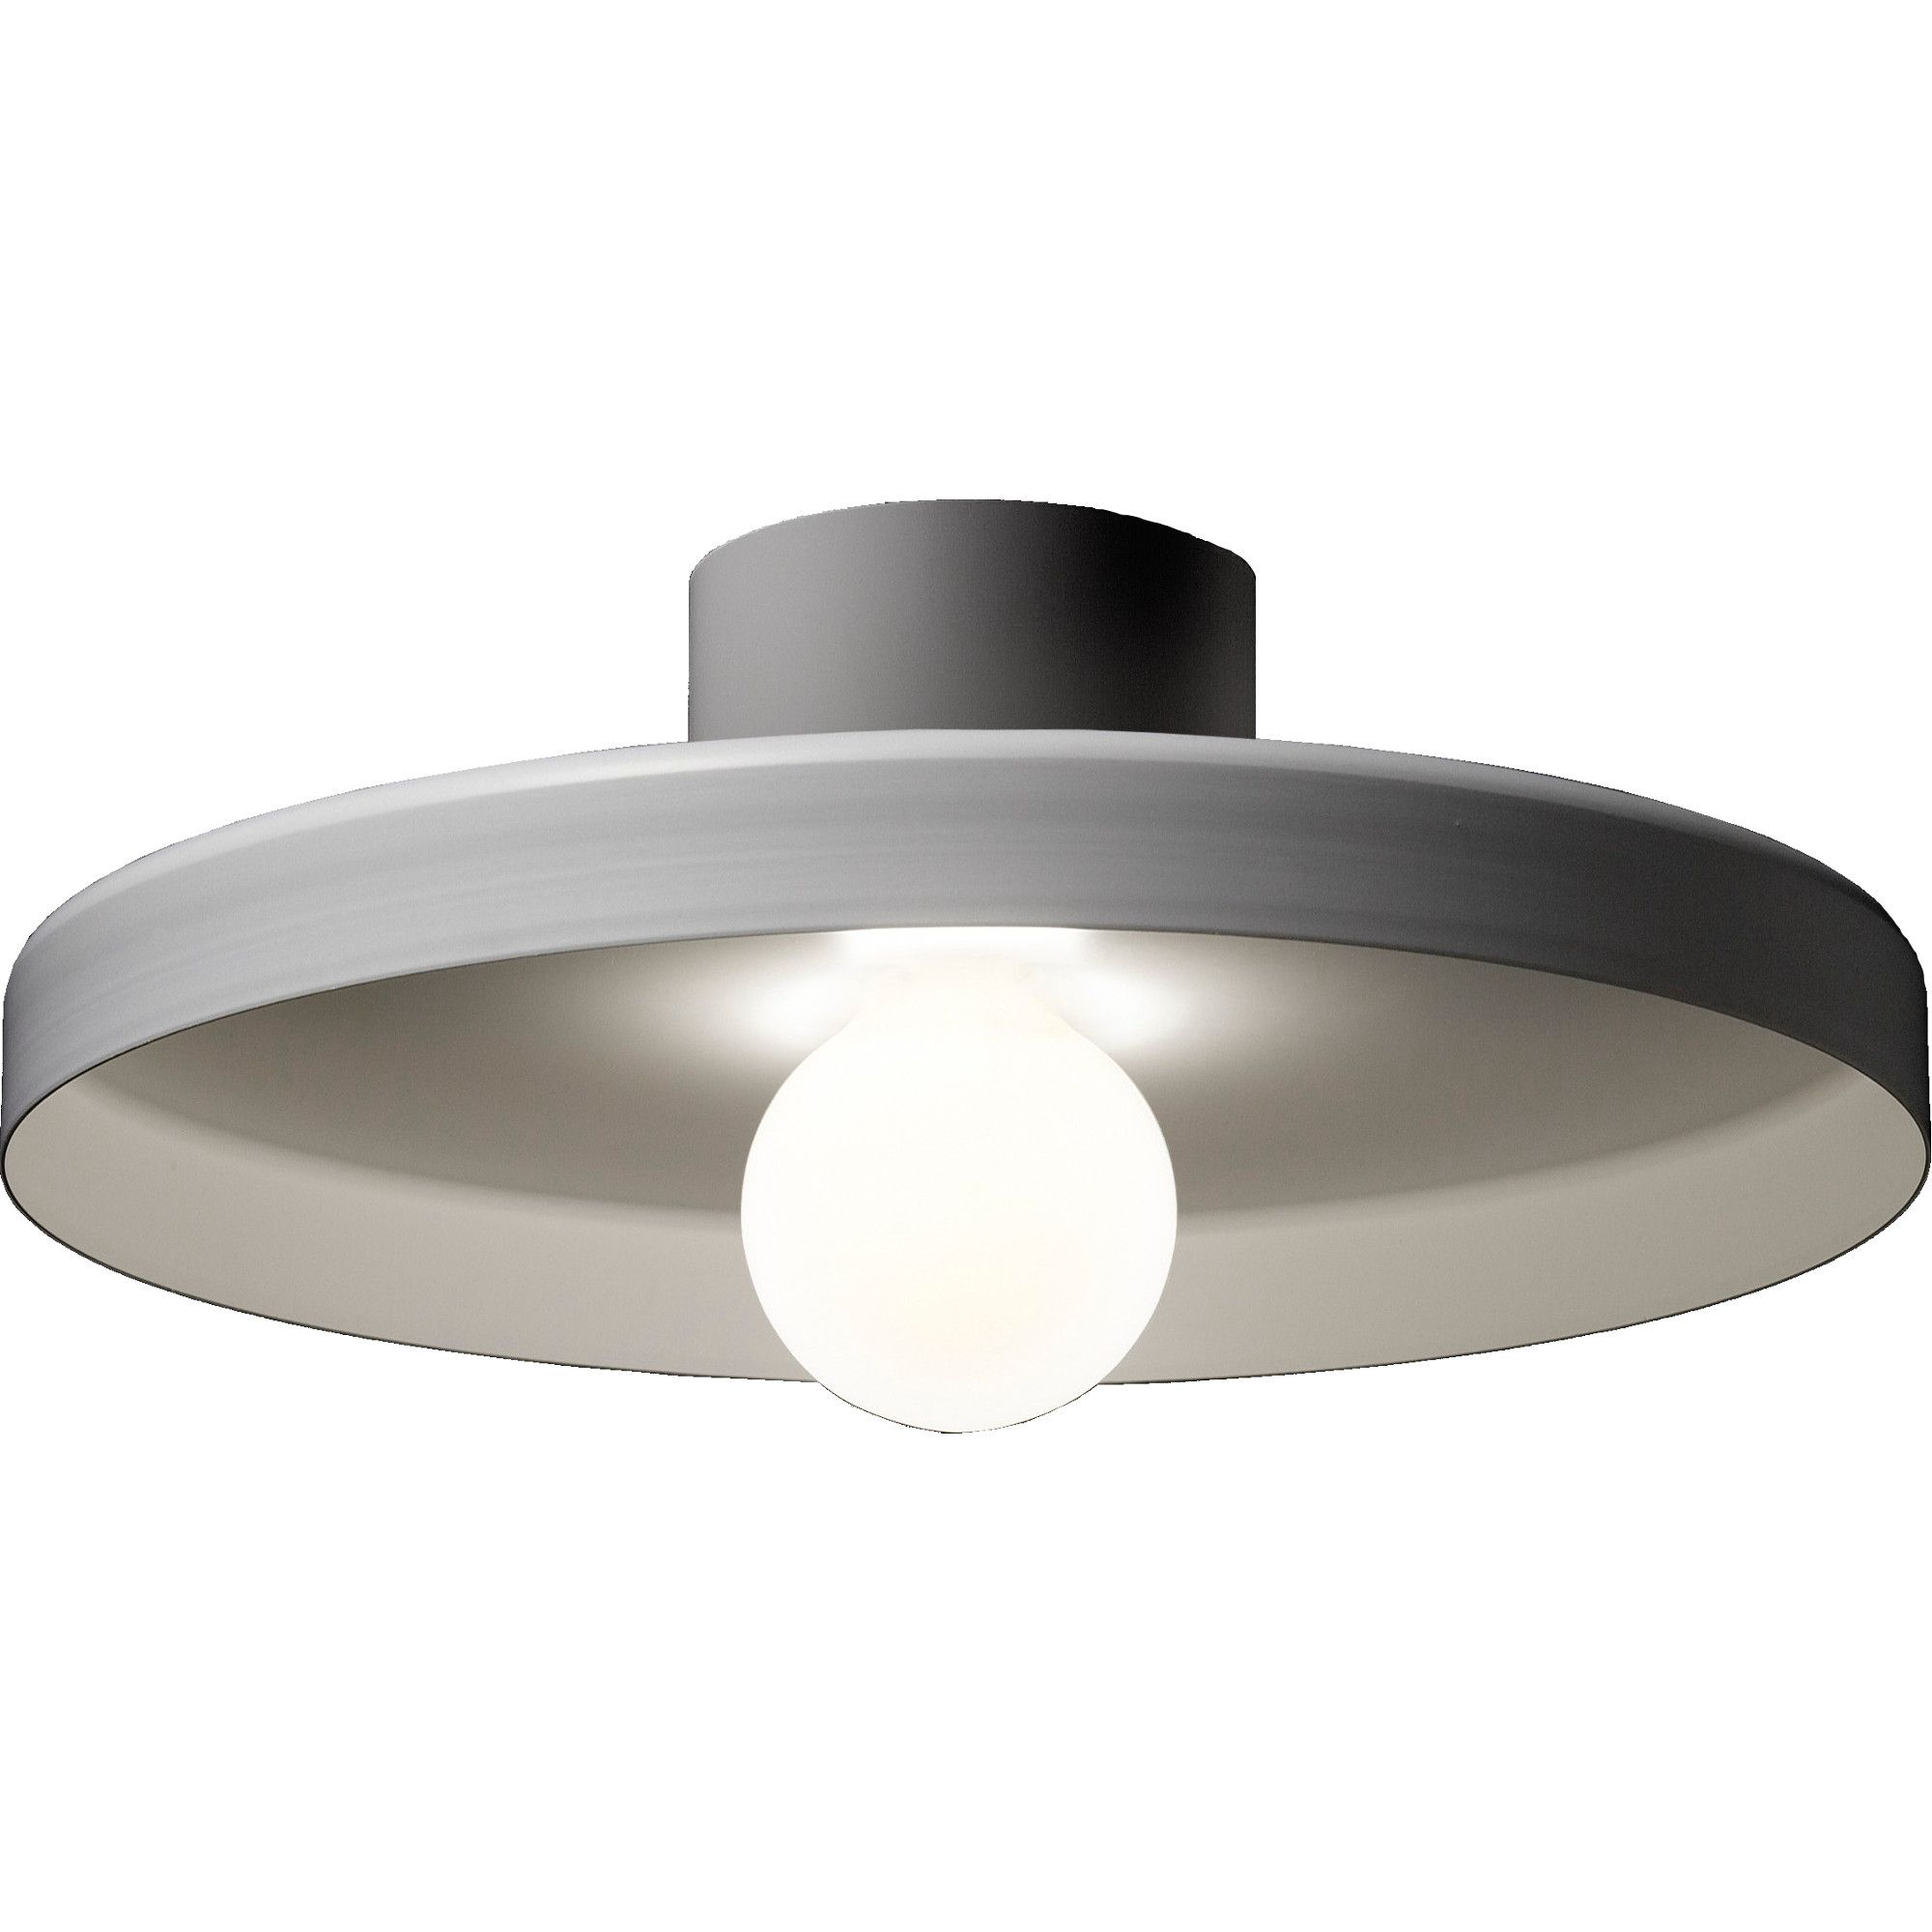 Disk Wall Ceiling Light By Tossb T66a2iwlwl In 2020 Ceiling Lights Wall Ceiling Lights Light